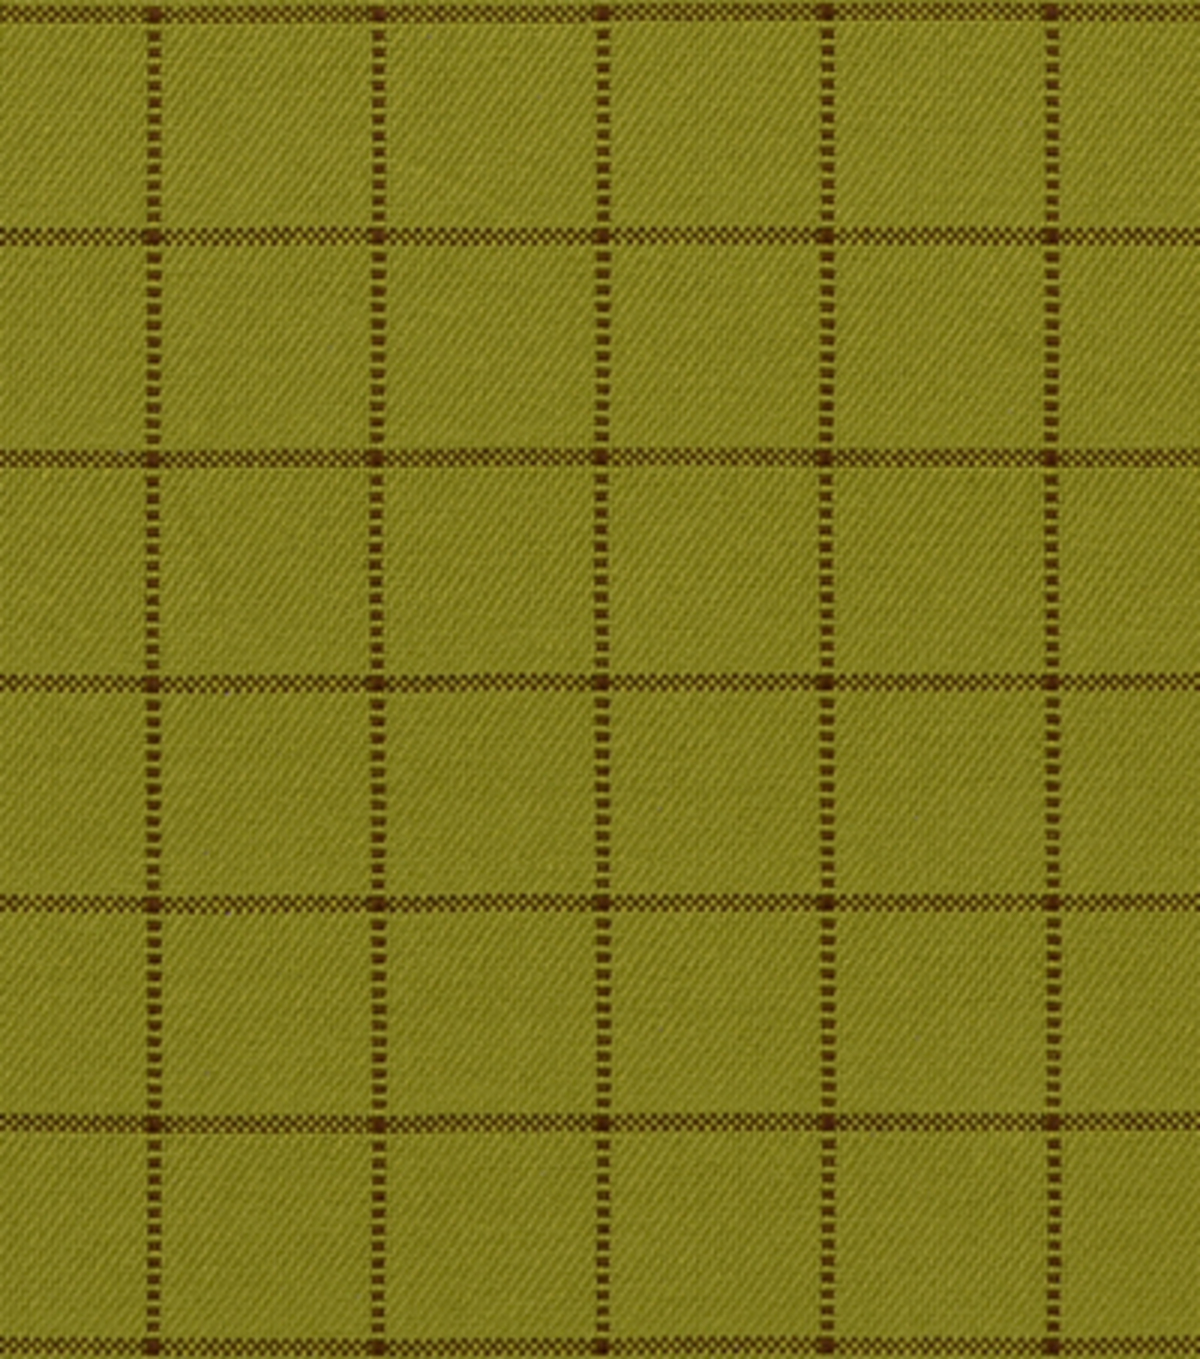 Home Decor 8\u0022x8\u0022 Fabric Swatch-Covington Ansible 242 Fennel